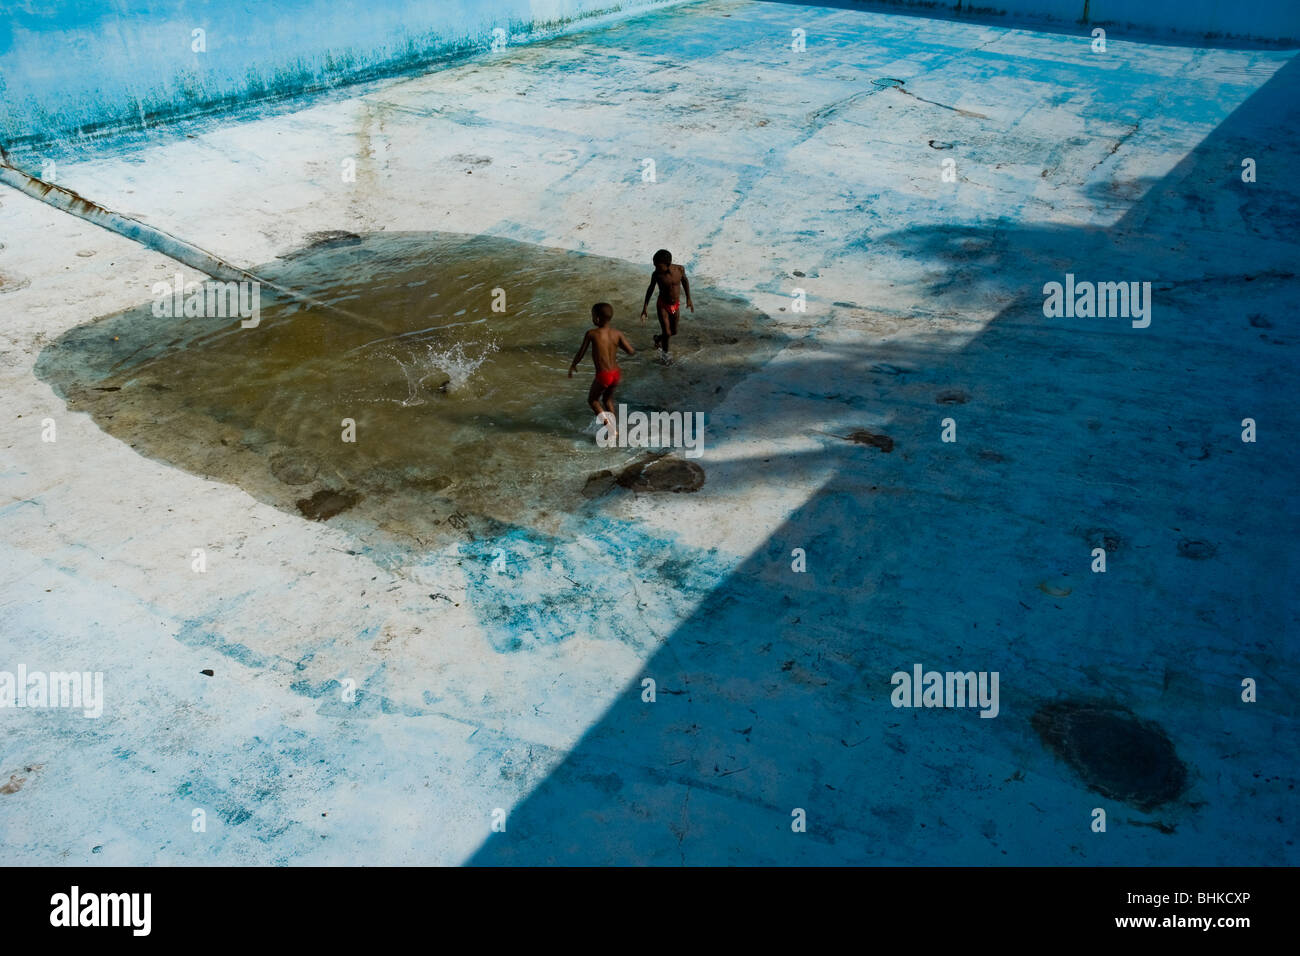 Cuban kids playing a game in the bottom of the old drained swimming pool in a small costal village of Siboney, Cuba. - Stock Image